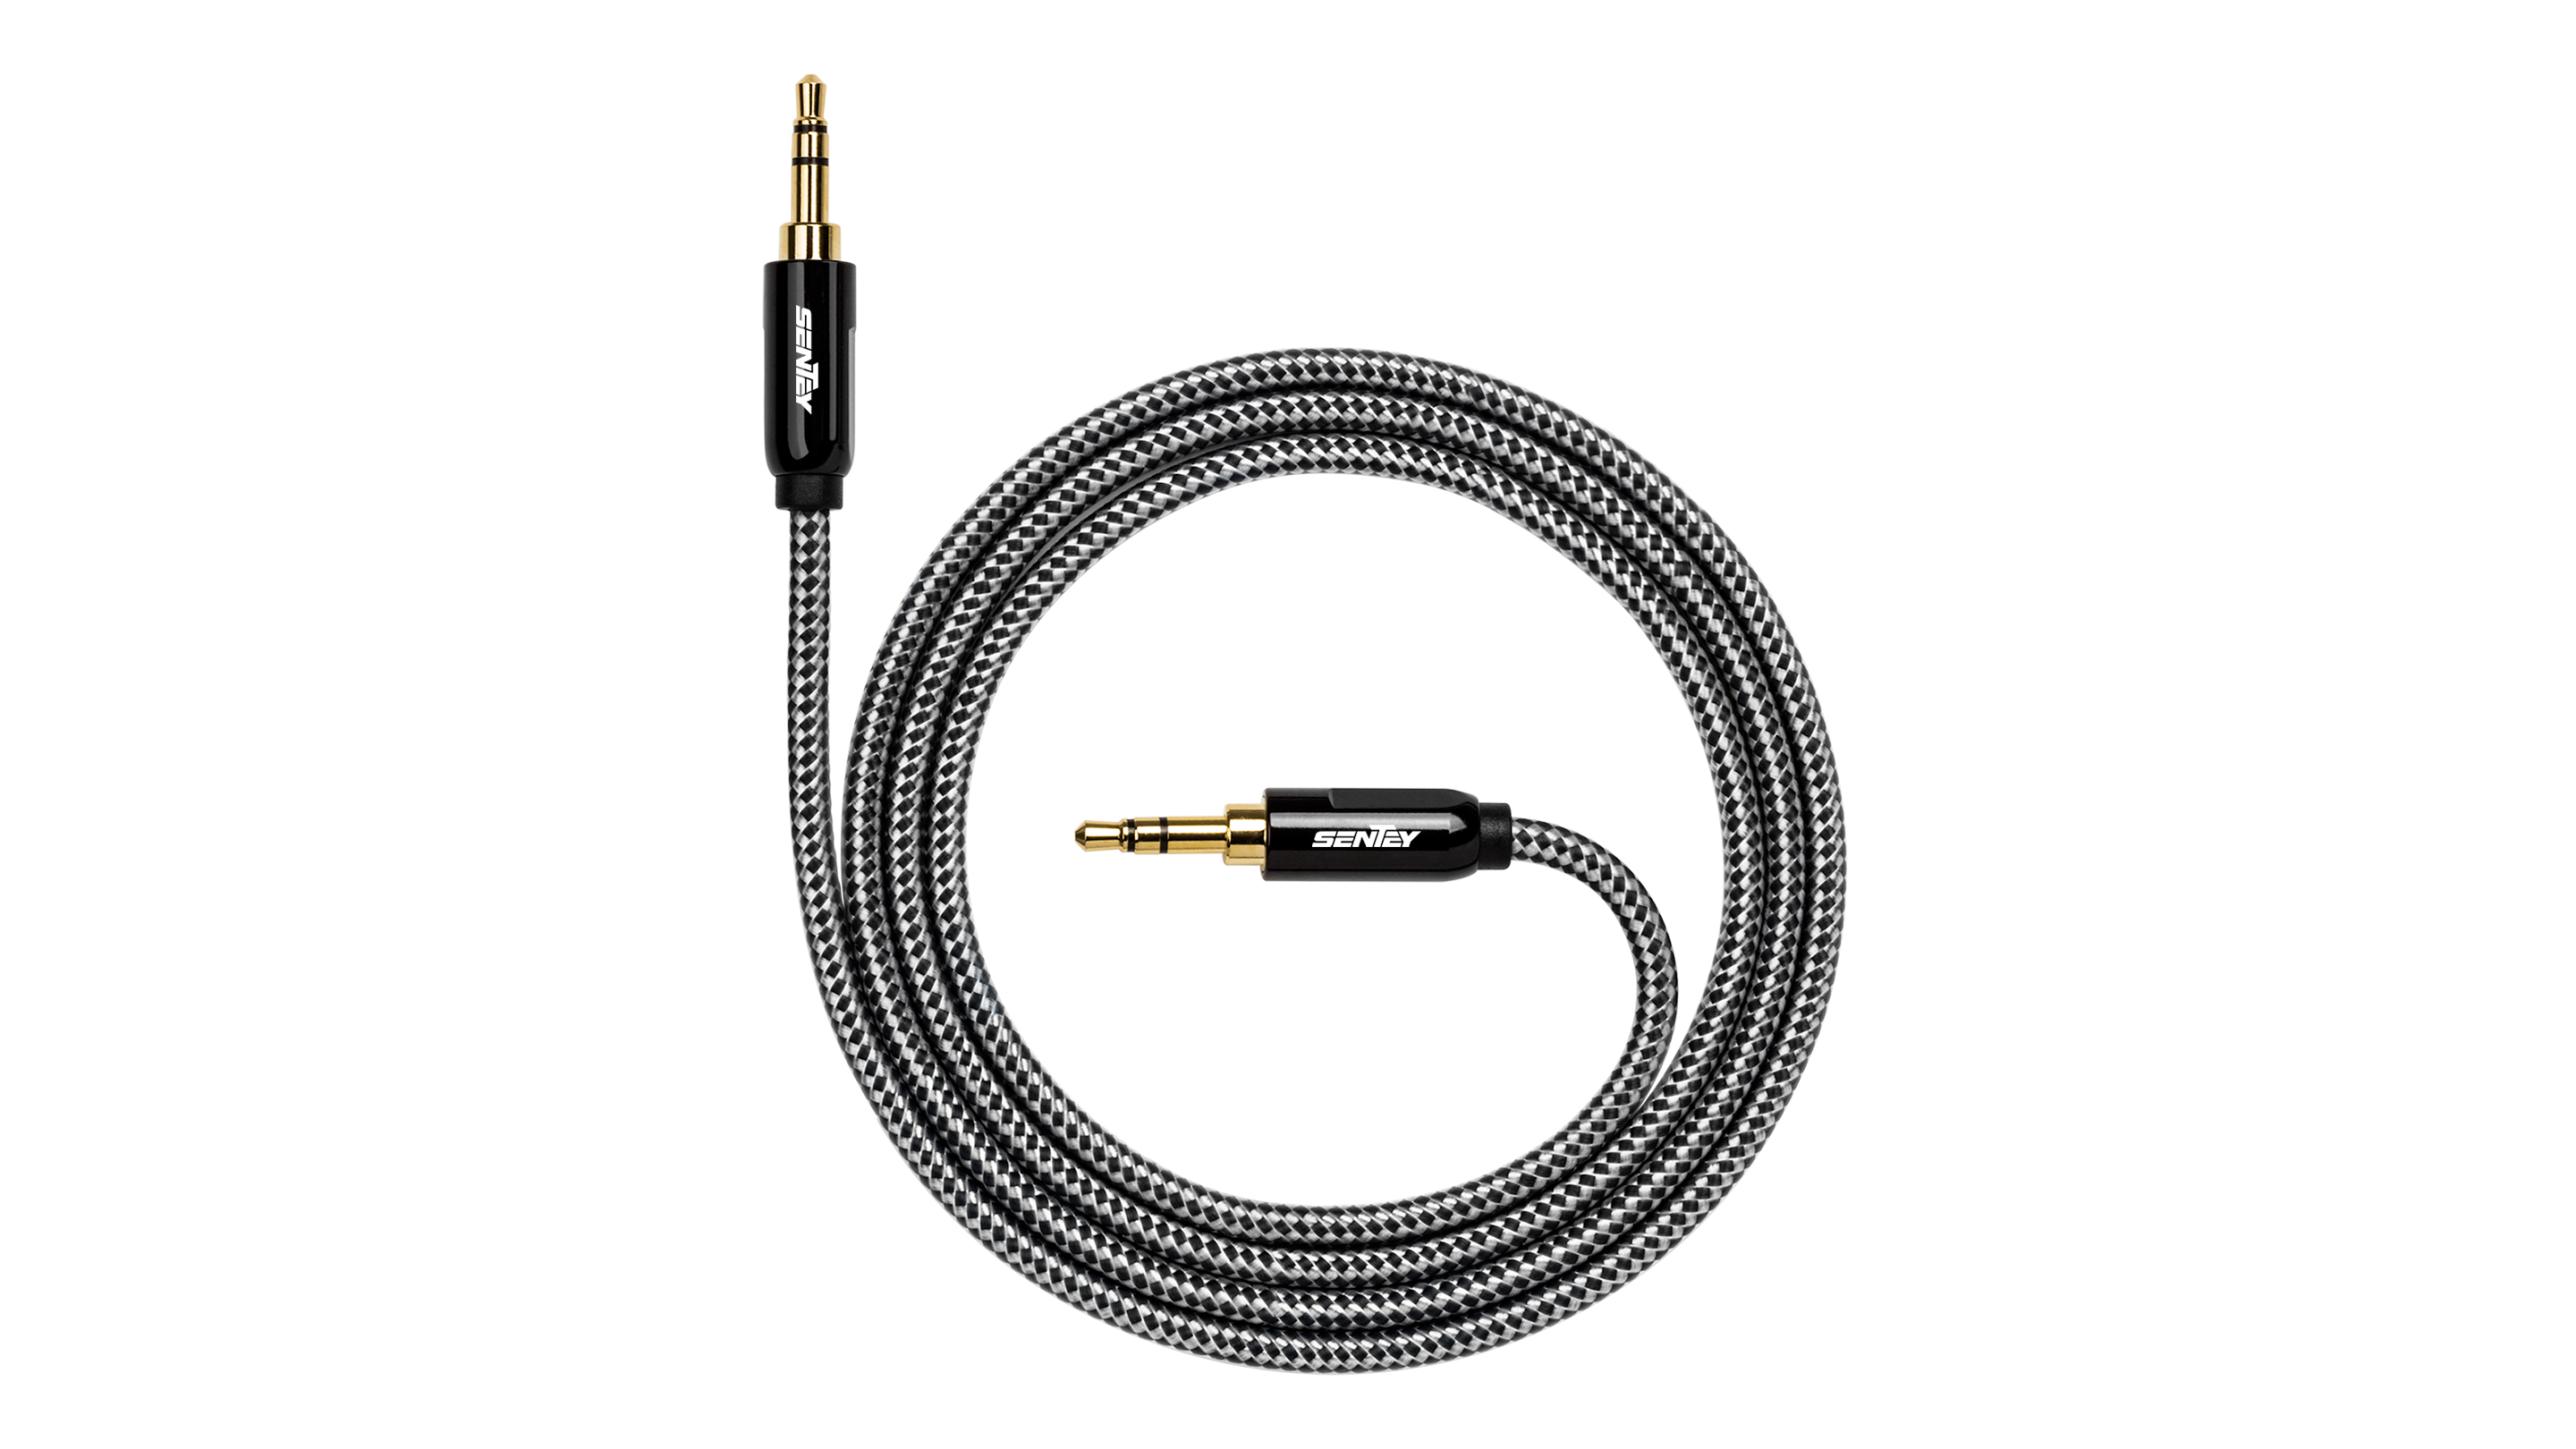 3 5mm Audio Cable Types